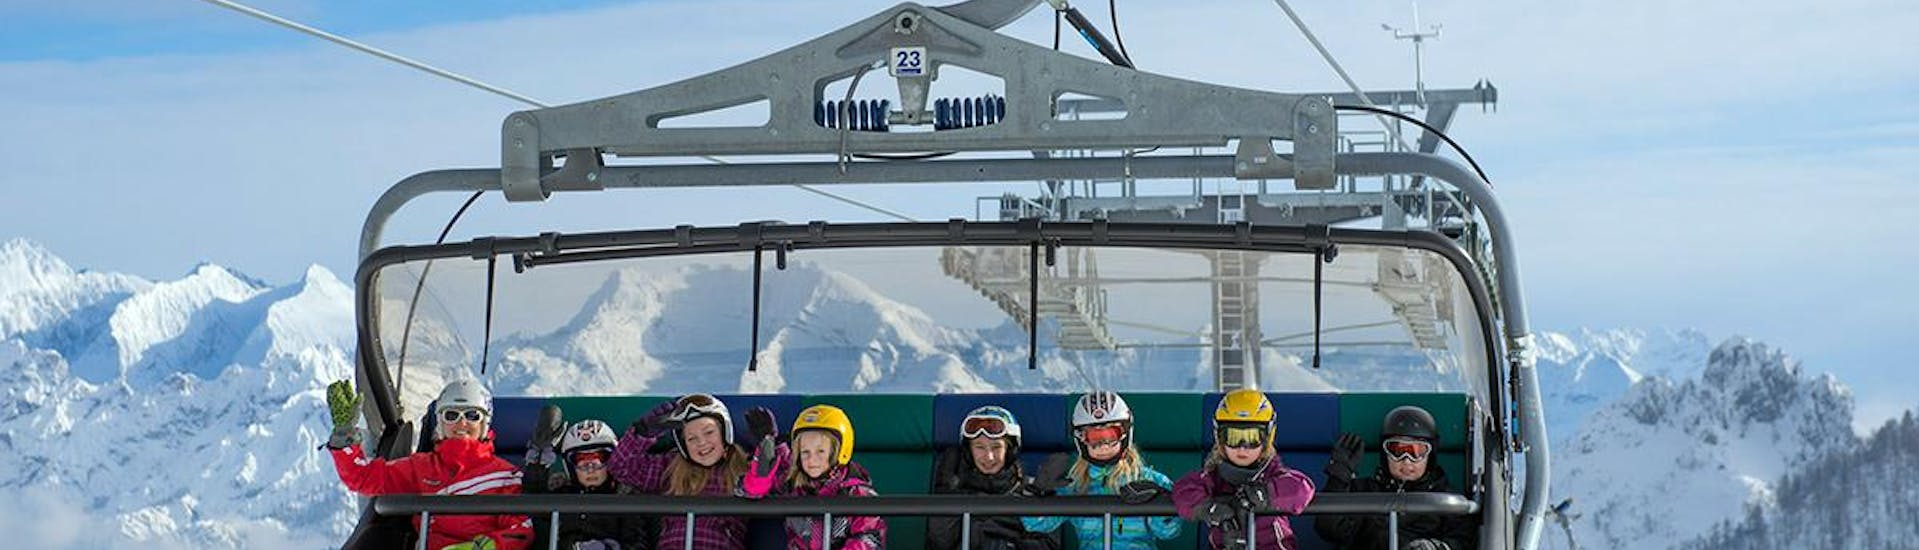 """Ski Lessons """"All-in-One"""" for Kids (4-11 years) - Advanced with HERBST Skischule Lofer - Hero image"""